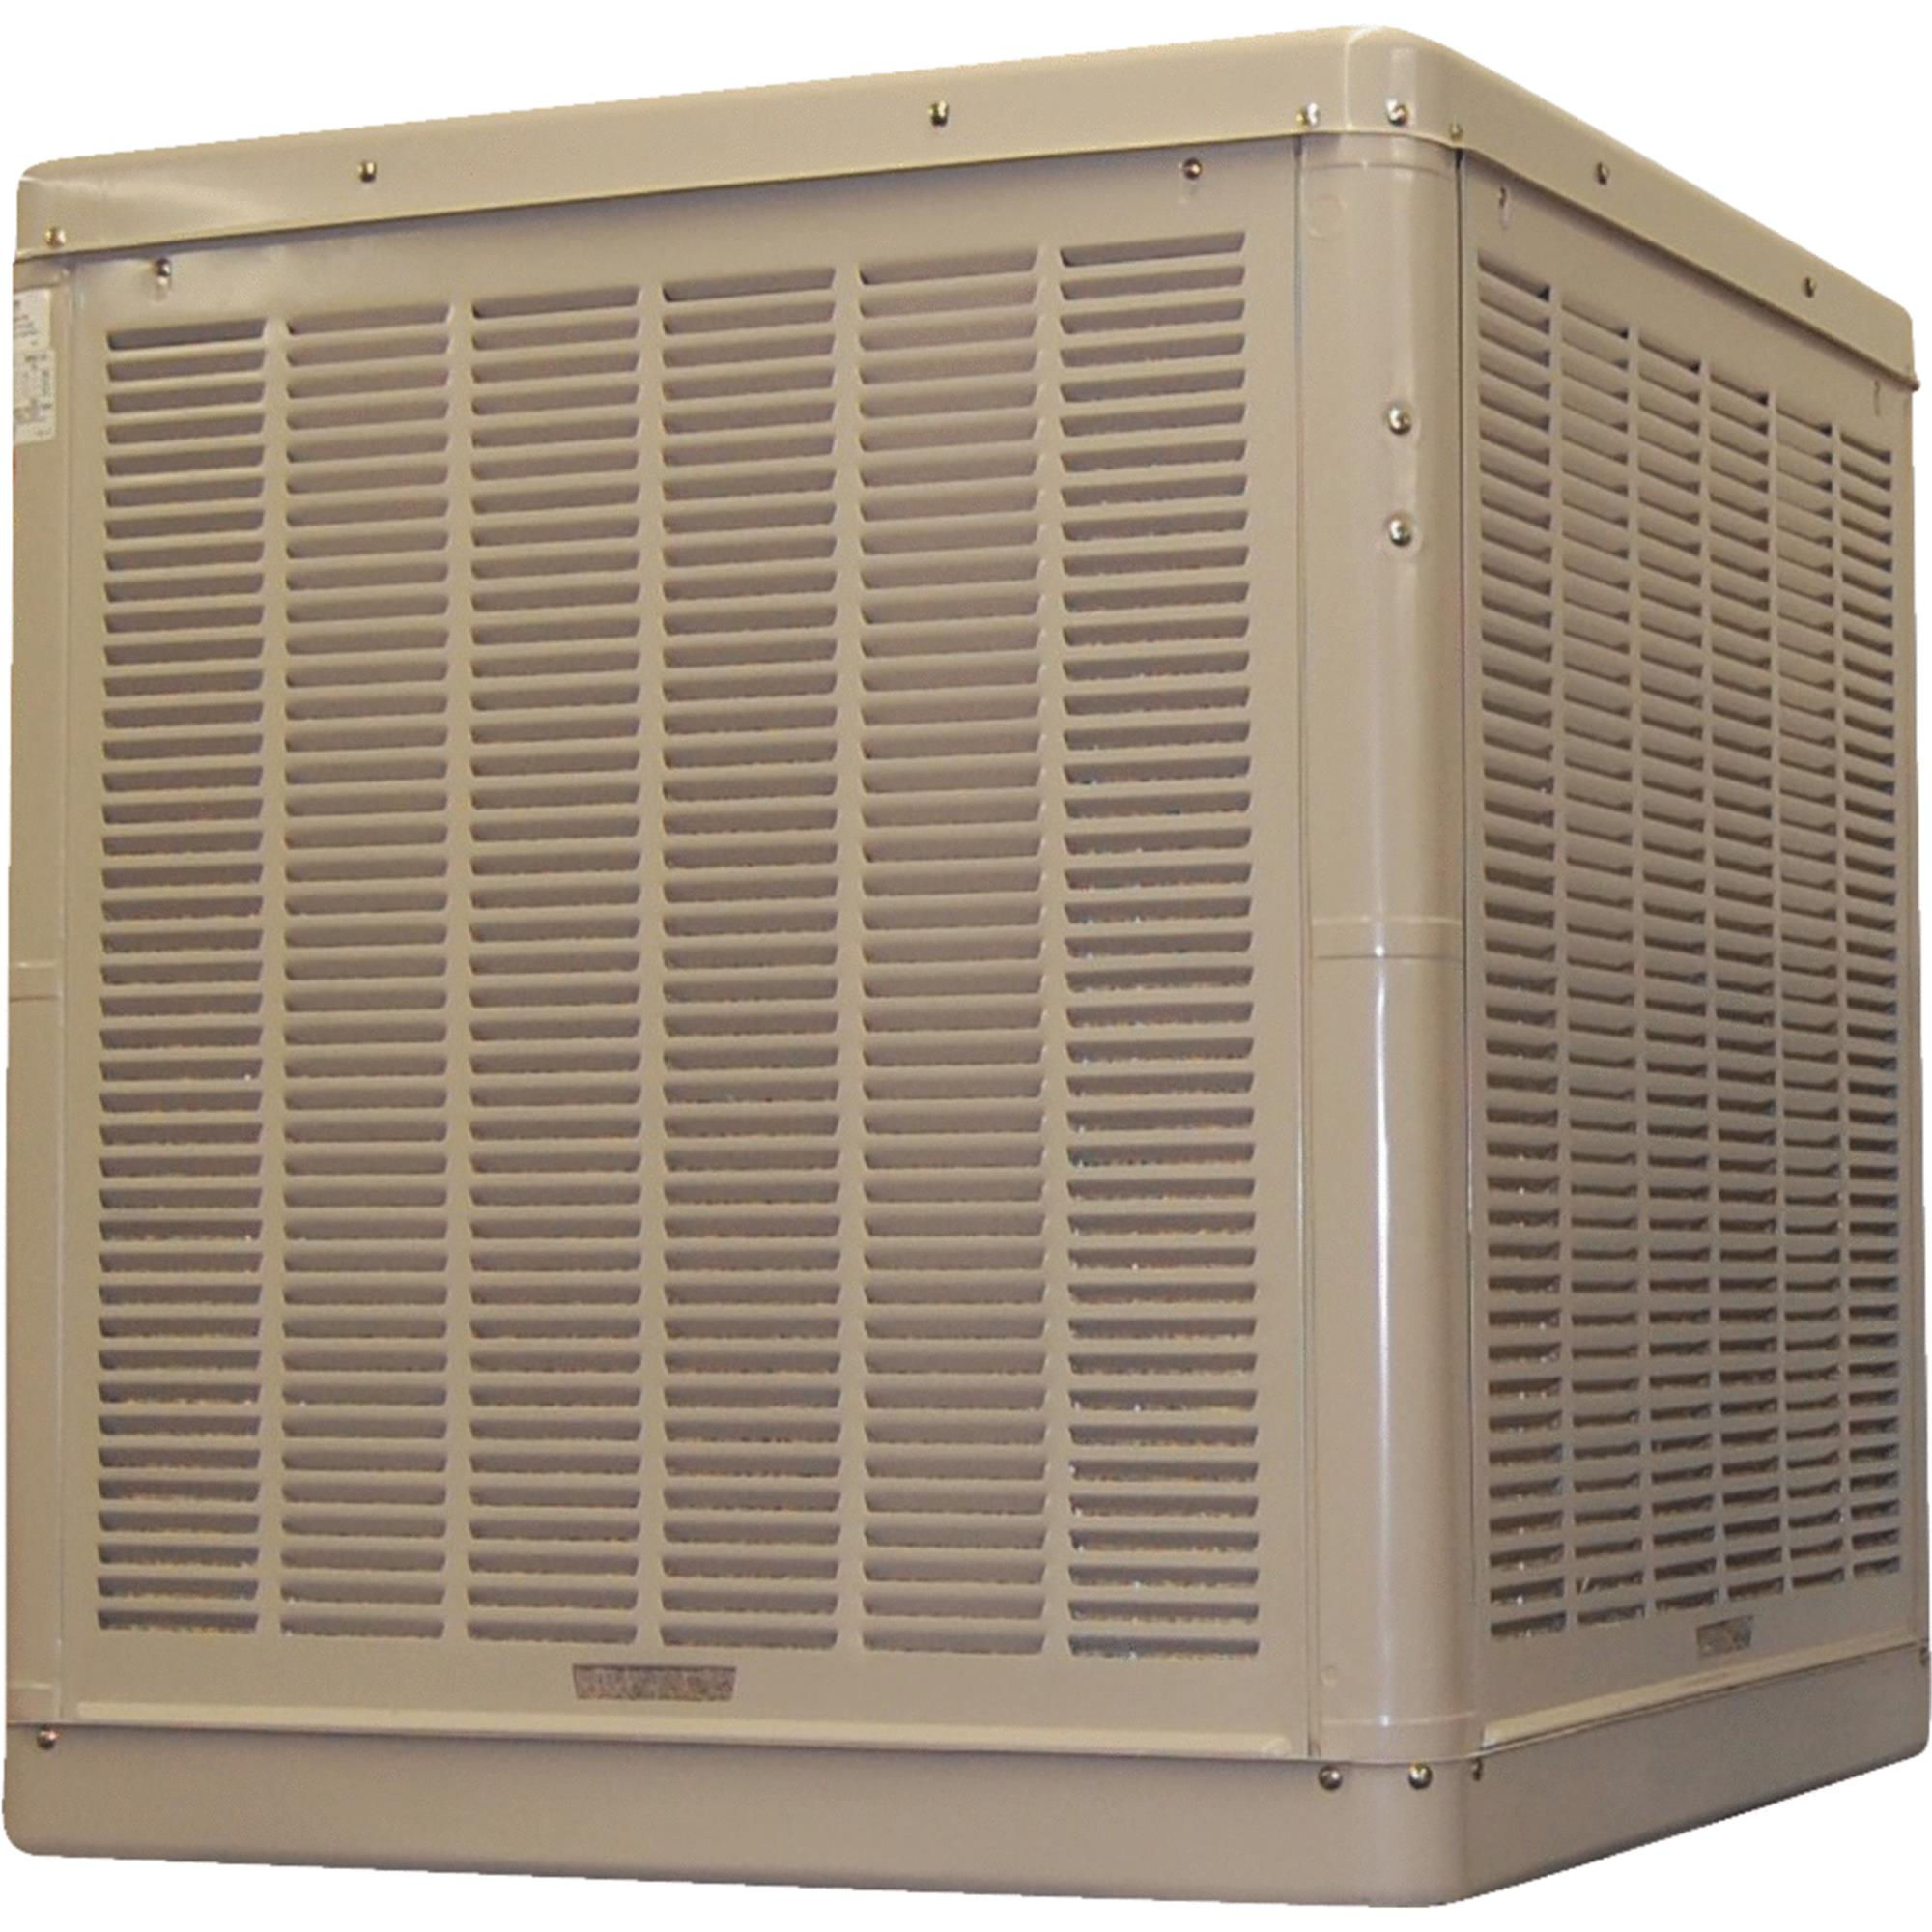 ESSICK AIR Ducted Evaporative Cooler,1/2 or 3/4HP N56/66D